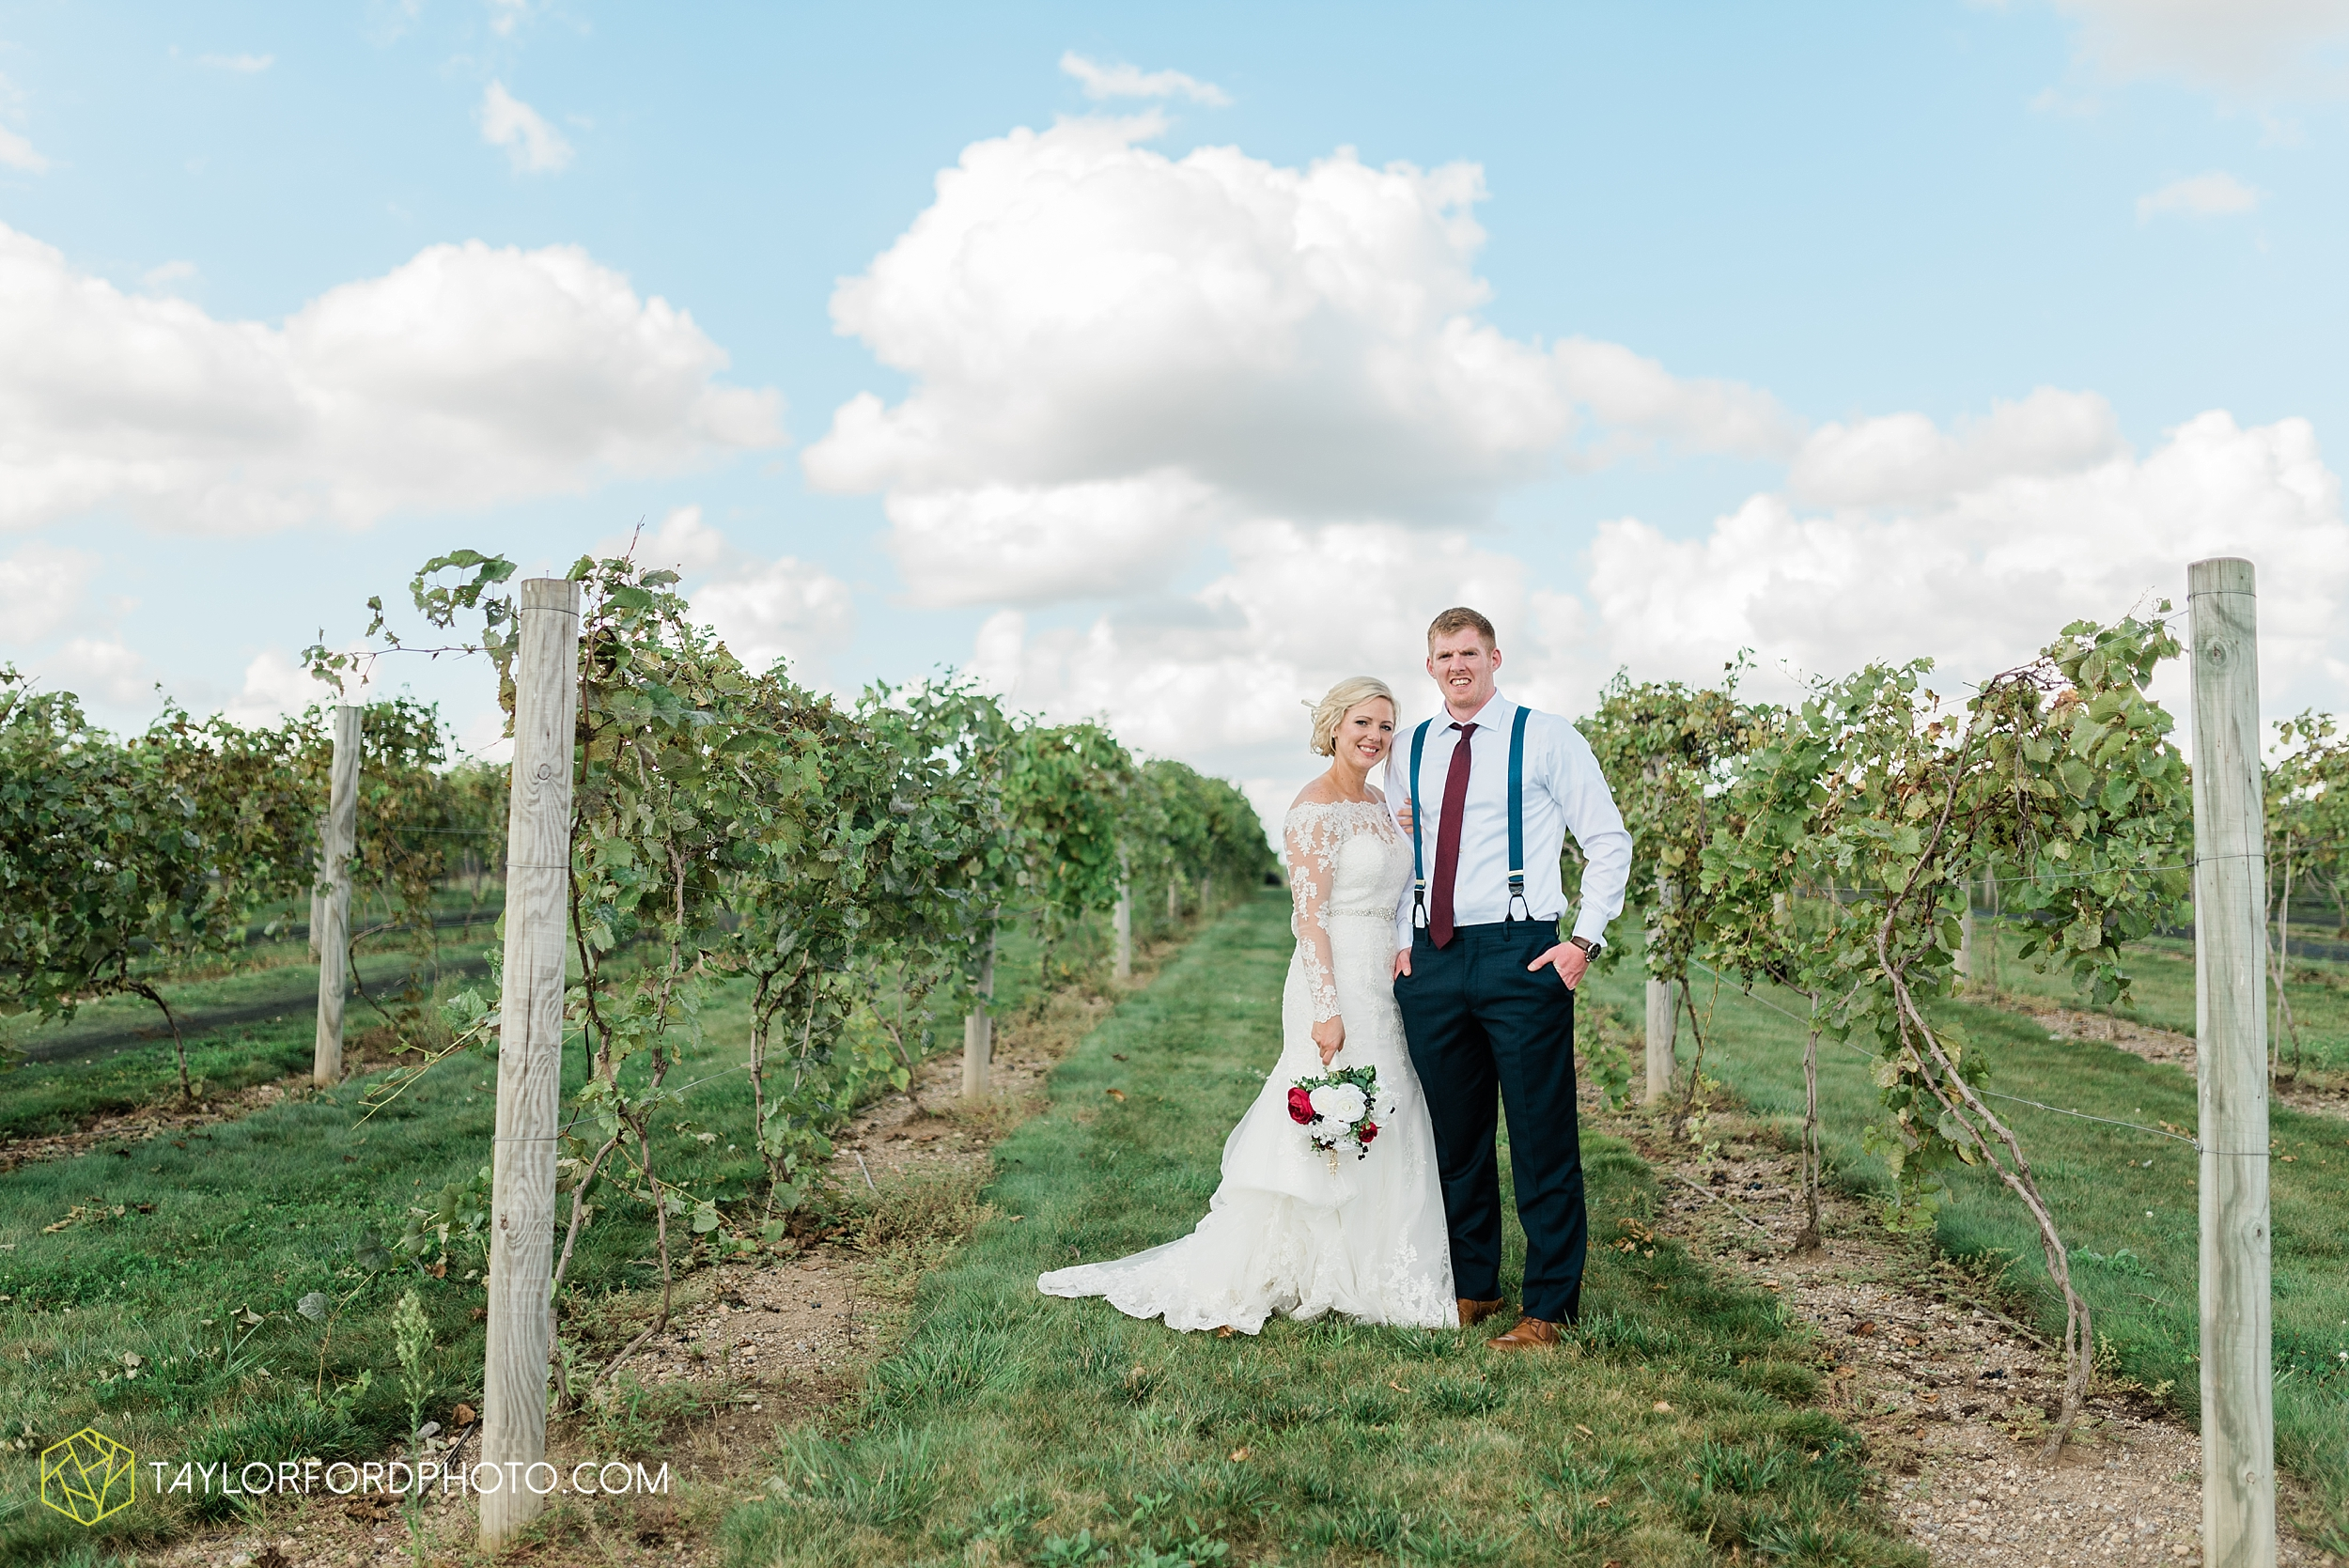 gayle-rayman-mike-steele-ottoville-ohio-wedding-immaculate-conception-parish-center-wedding-sycamore-lake-winery-wannamachers-photographer-taylor-ford-photography_0413.jpg